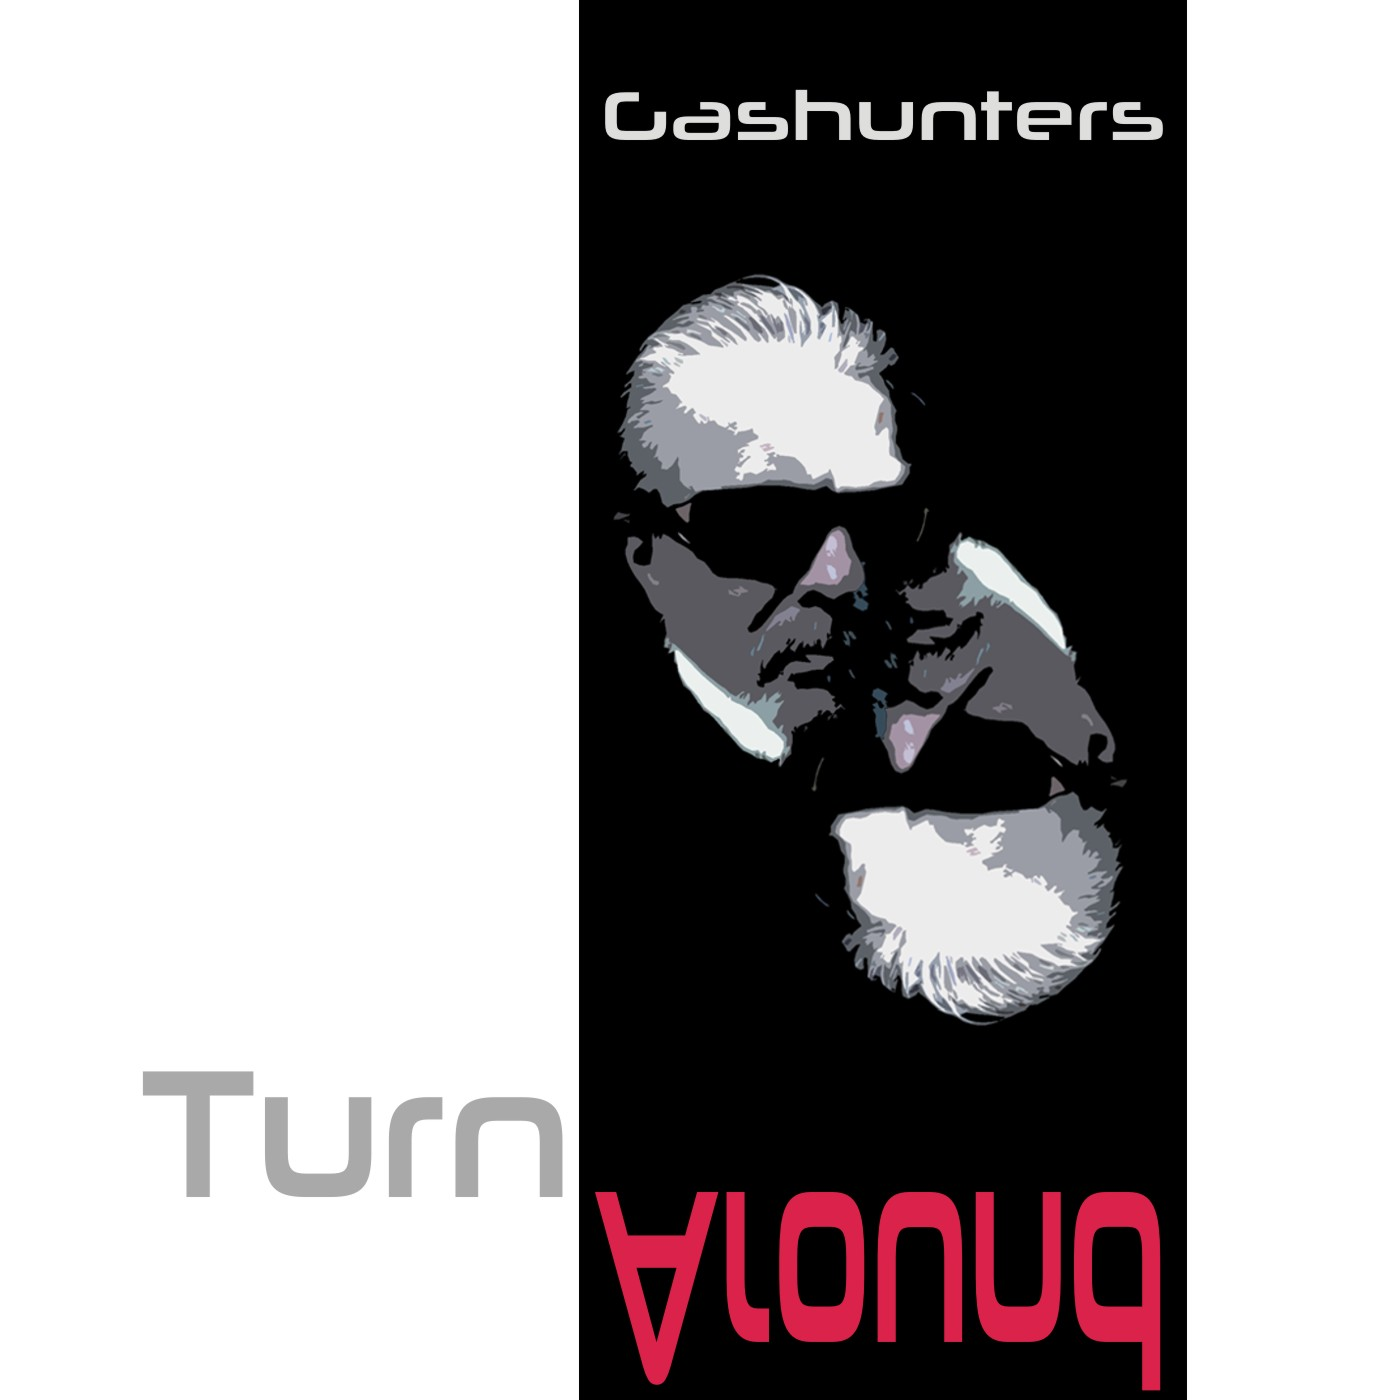 GasHunters CD Artwork What's going on